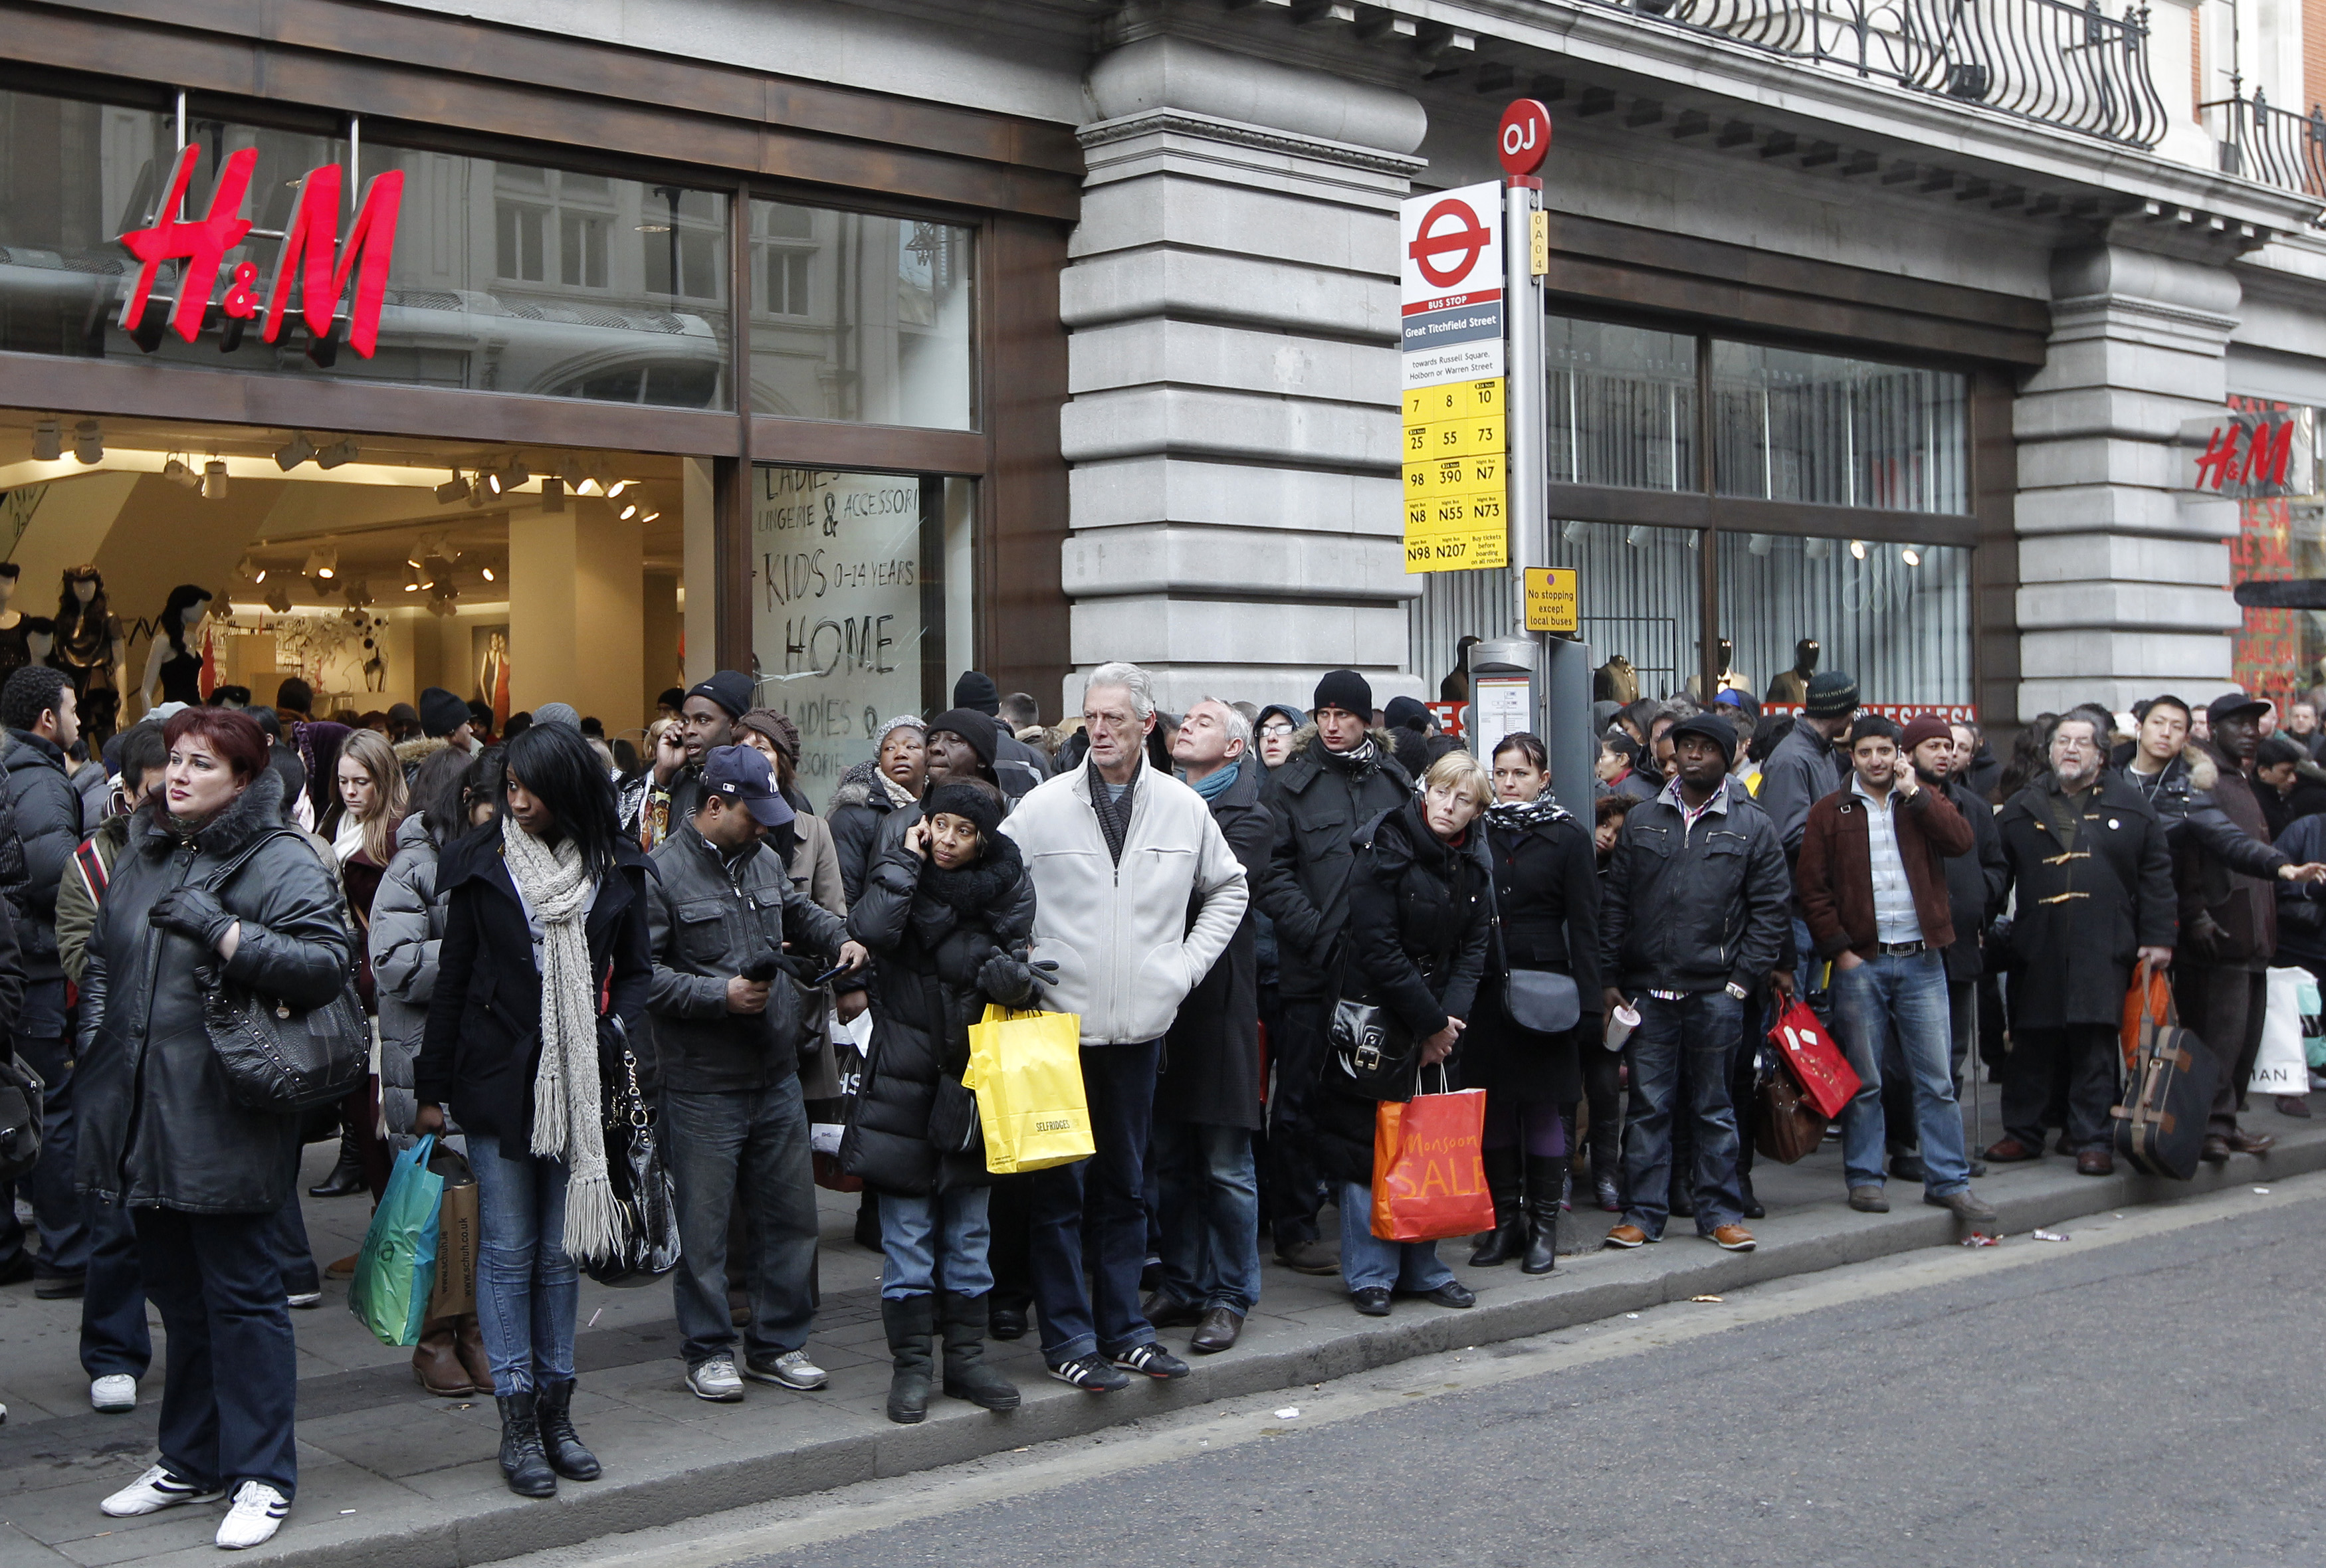 Bus queues build up on Oxford Street, during a London Underground strike, in central London